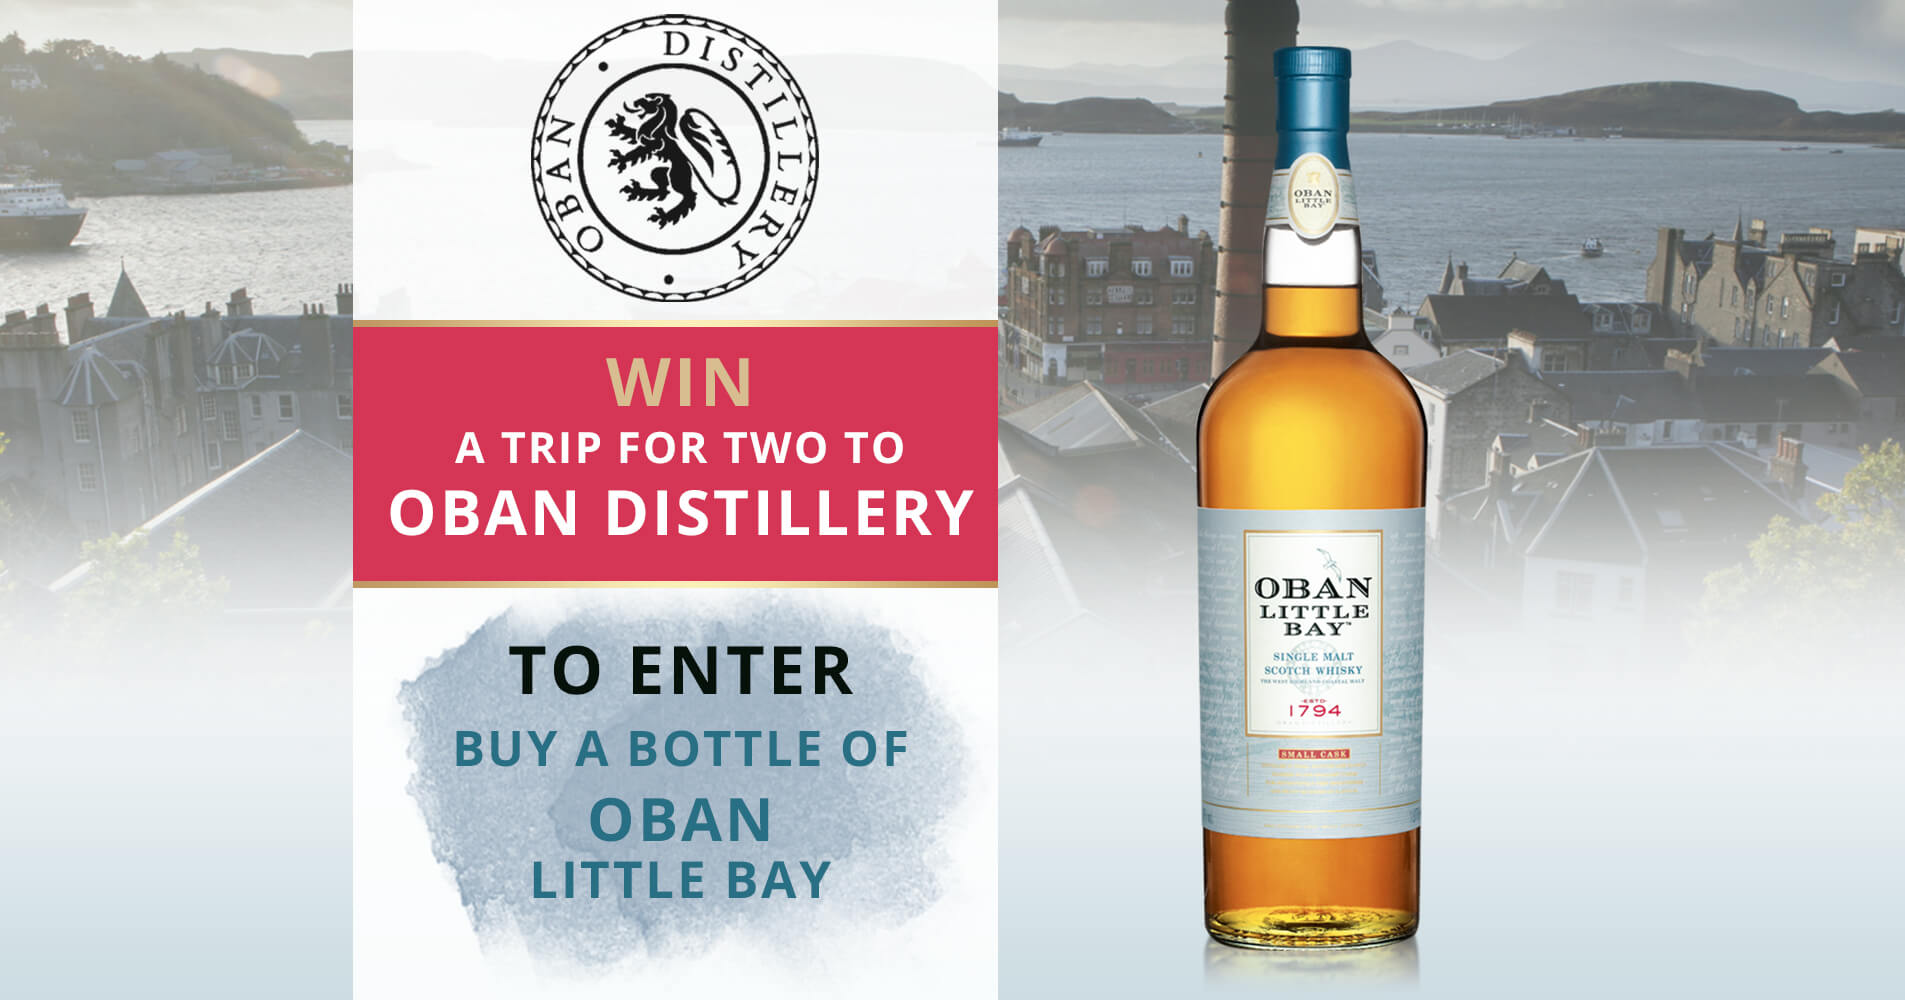 Win a trip for two to Oban Distillery! : The Whisky Exchange